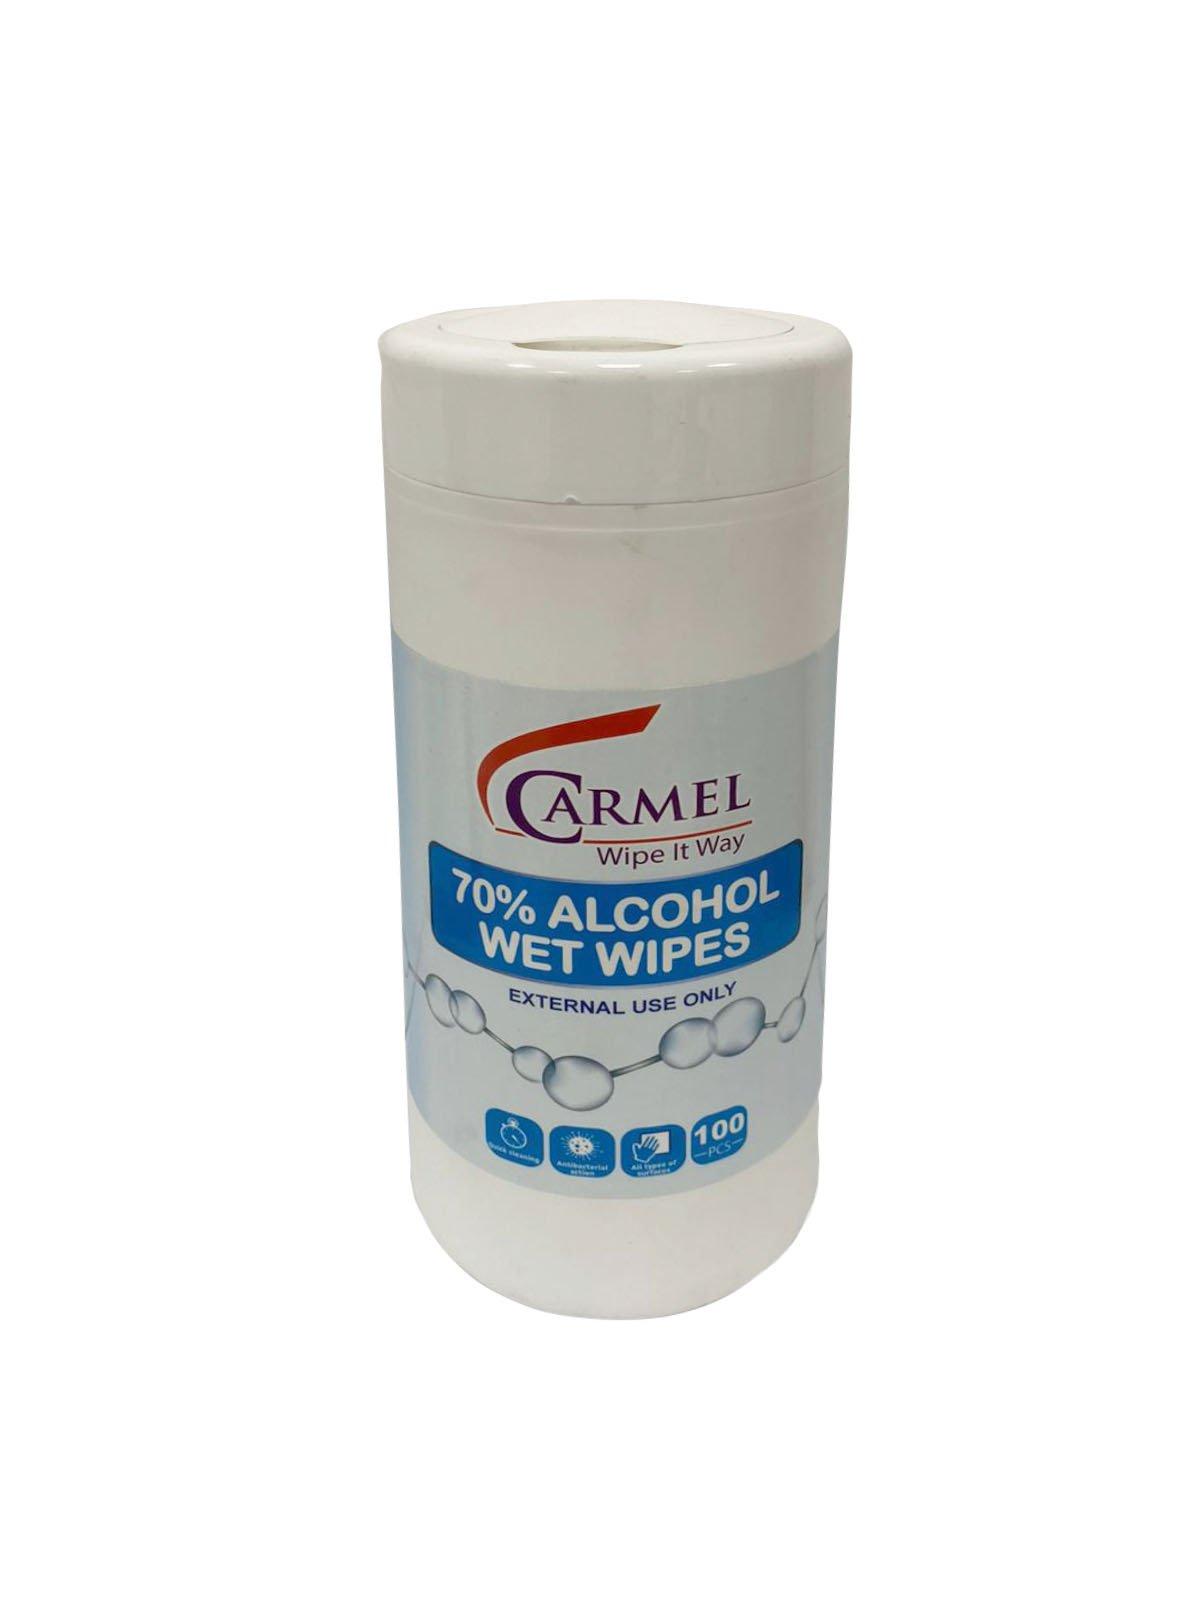 Disinfecting wipes - CDC recommended - 70% alcohol -  1 palette - 980 canisters of 100 wipes- $6/canister - free shipping - Made in Israel - Brooklyn Equipment